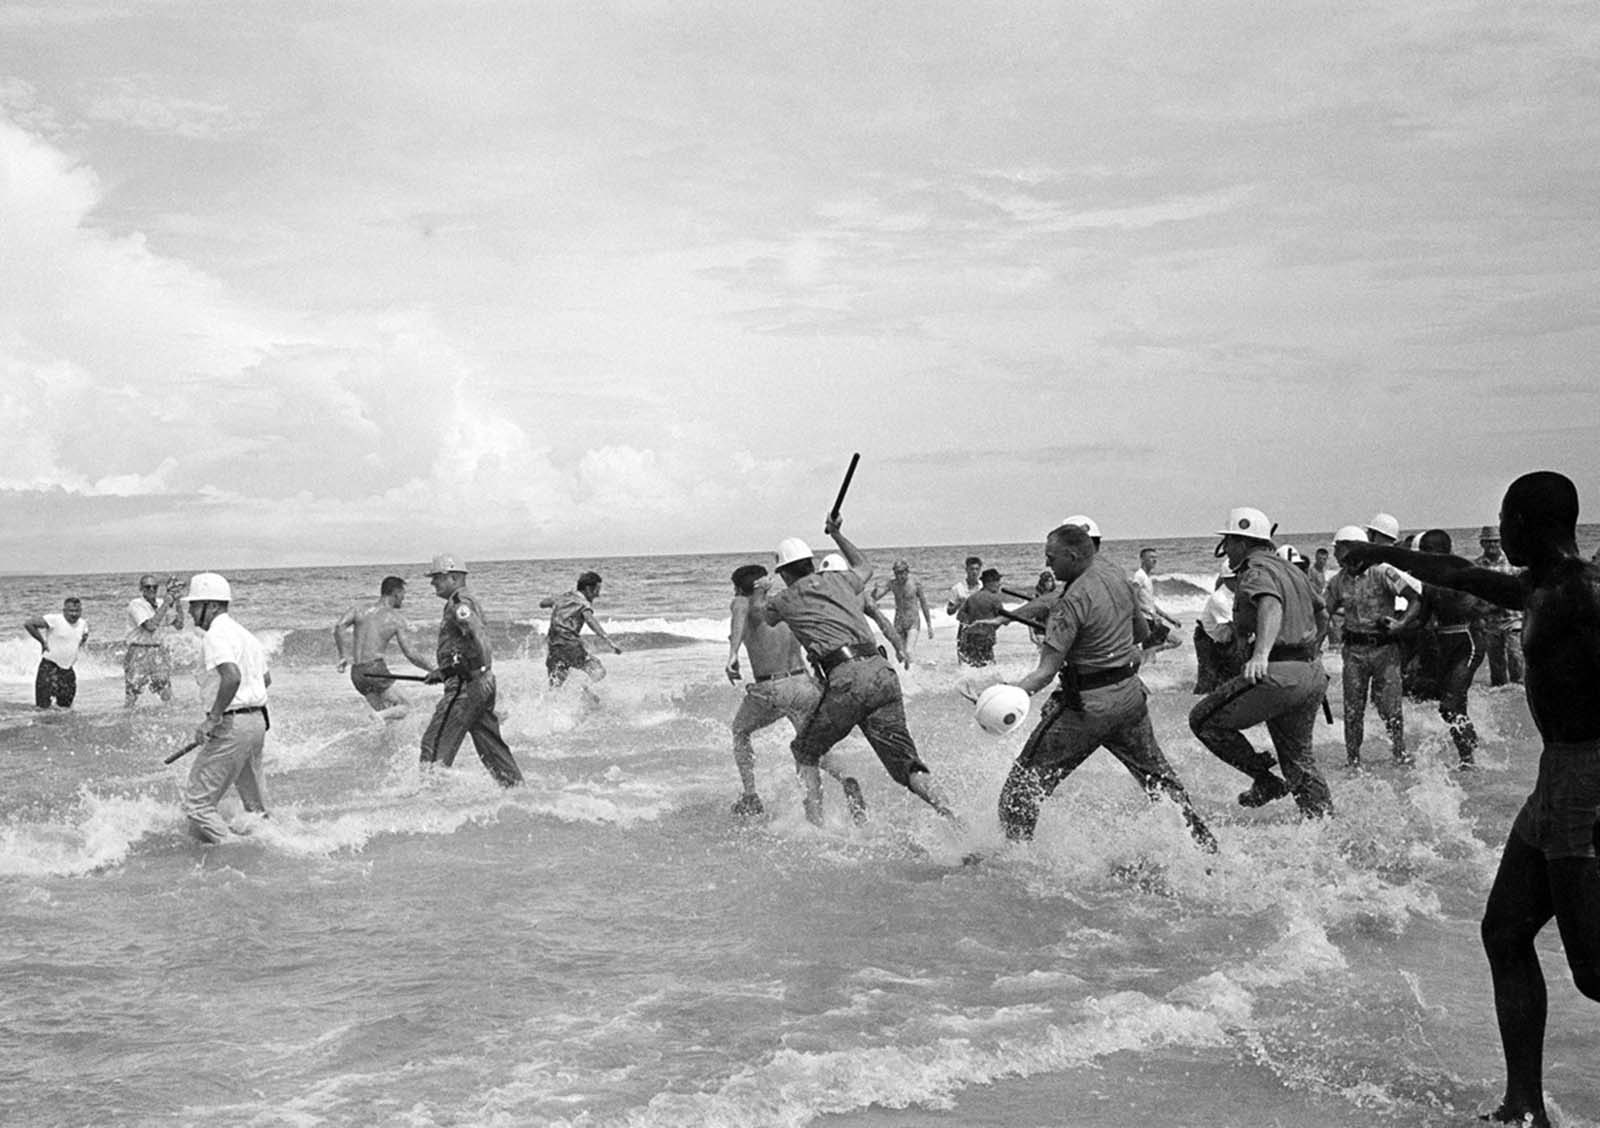 A state police officer with club in hand overtakes a white segregationist, as African Americans attempted to swim and were attacked by a large group of whites at St. Augustine Beach, Florida, on June 25, 1964. The state police arrested a number of whites and African Americans.